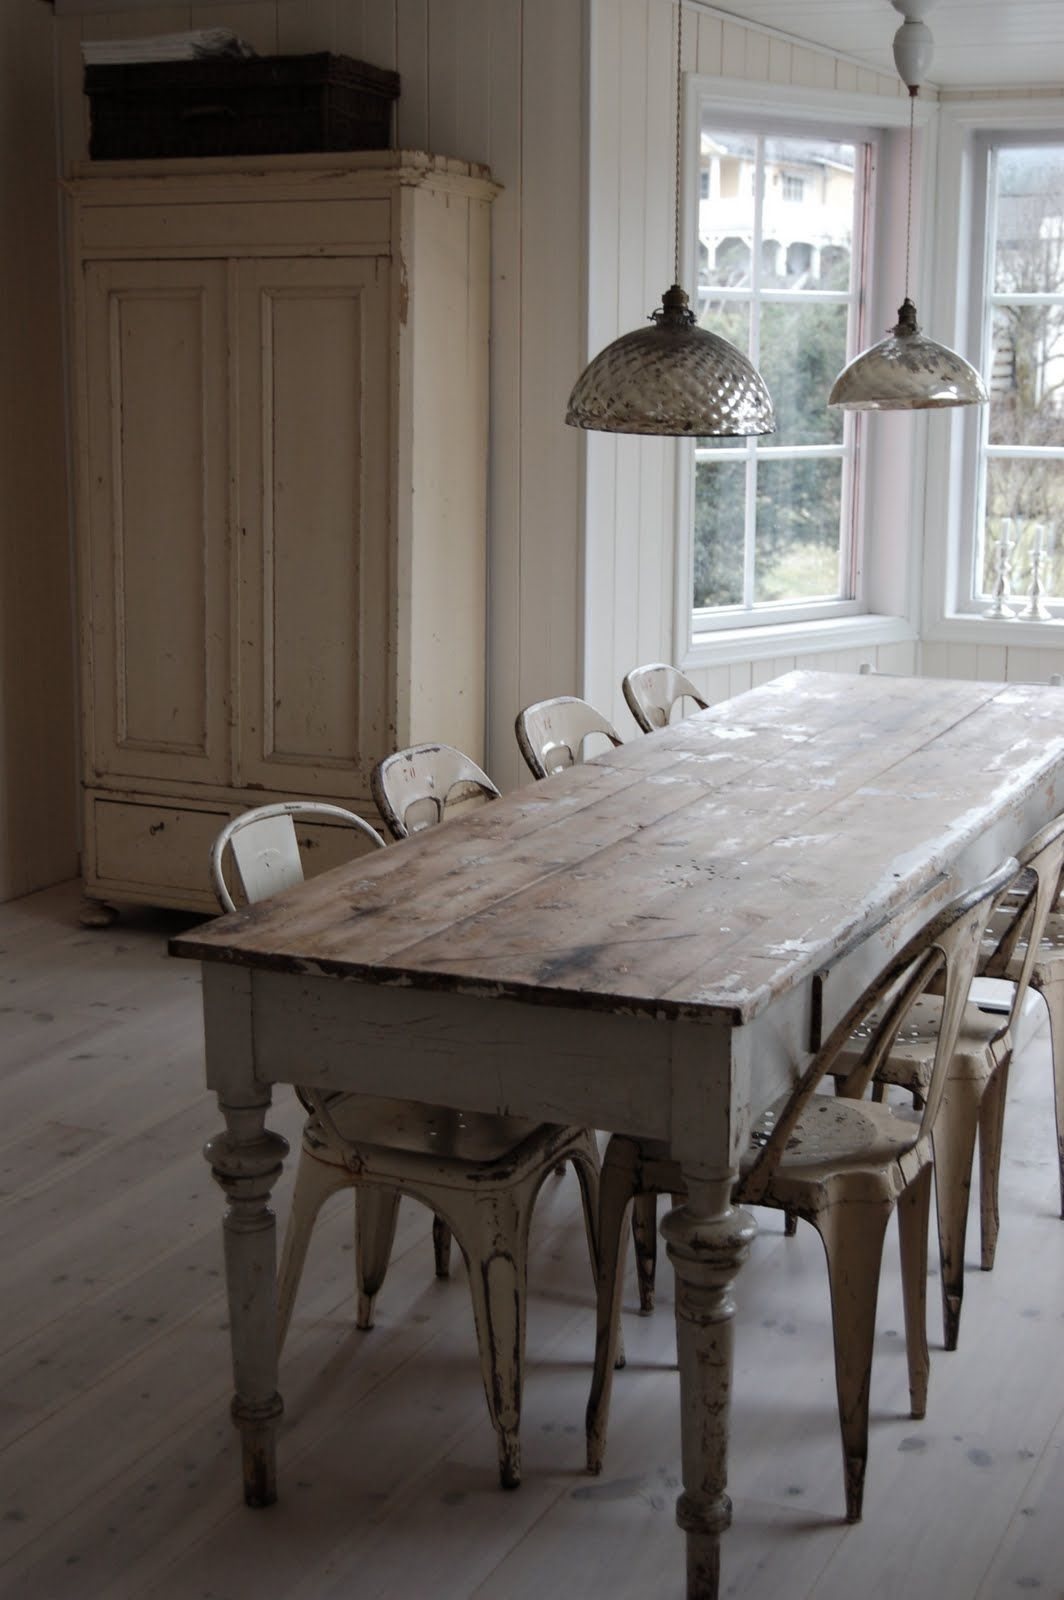 Vitrine Vito Chaise Old Farmhouse Dining Room Table Chairs Reclaimed Simple